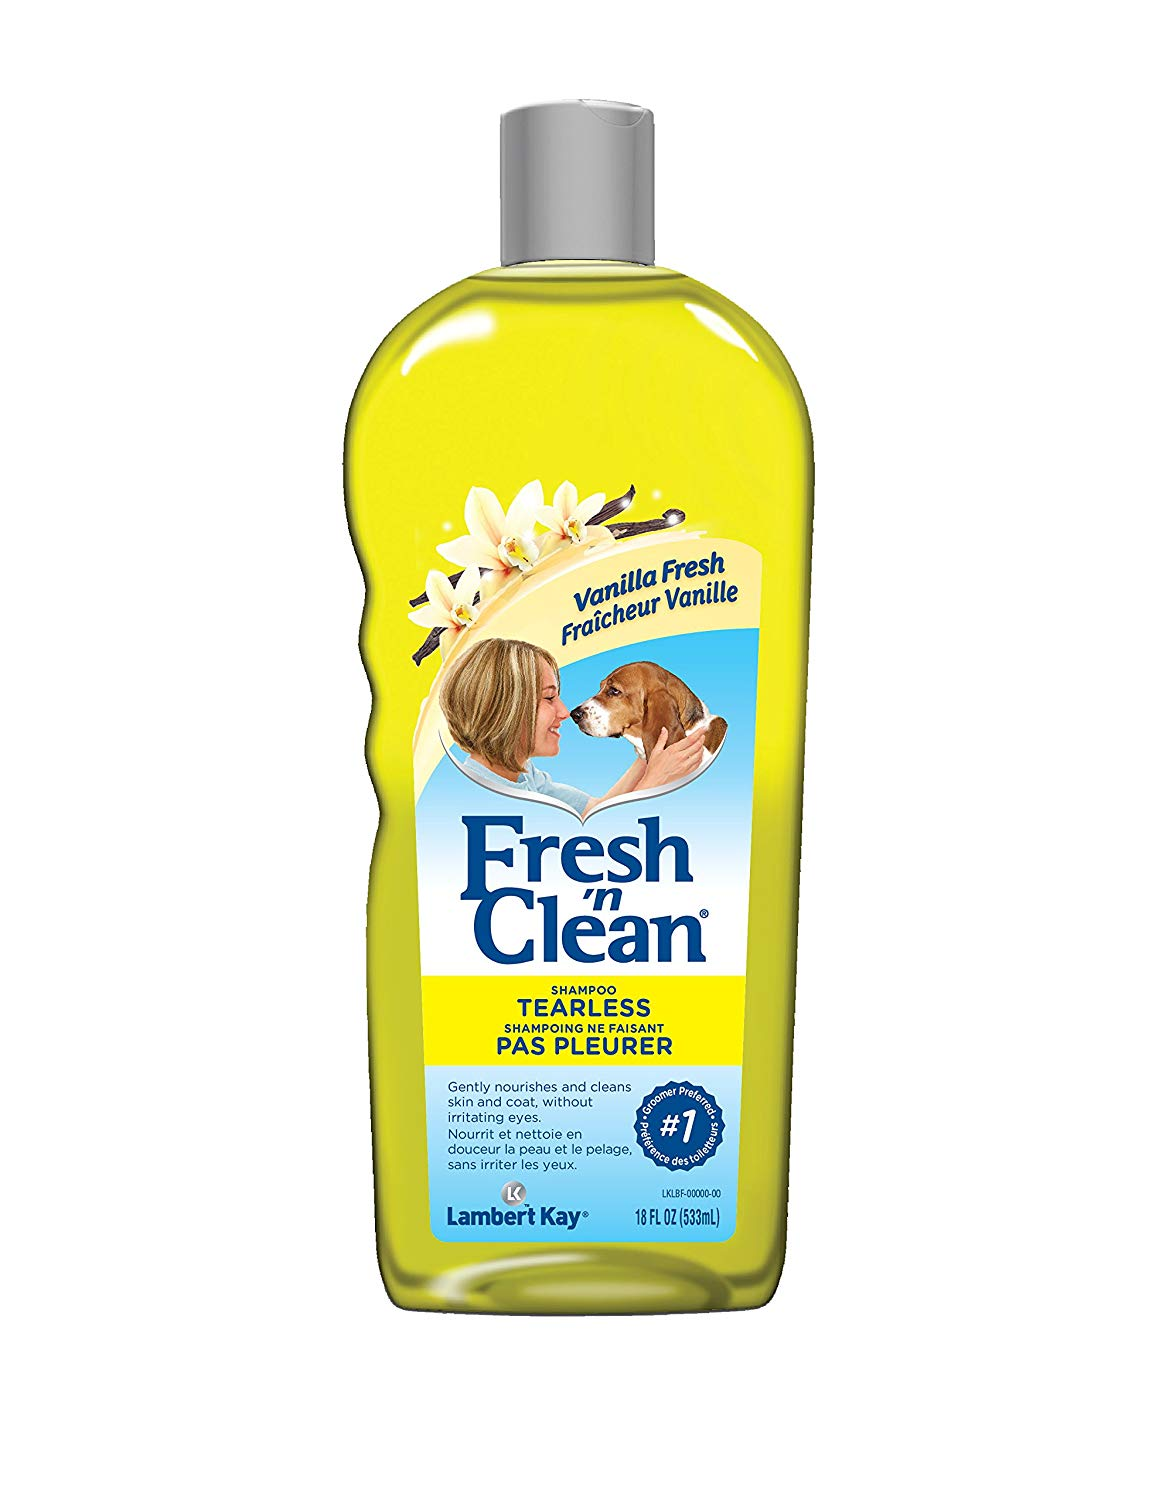 Best Shampoo For Dogs in India